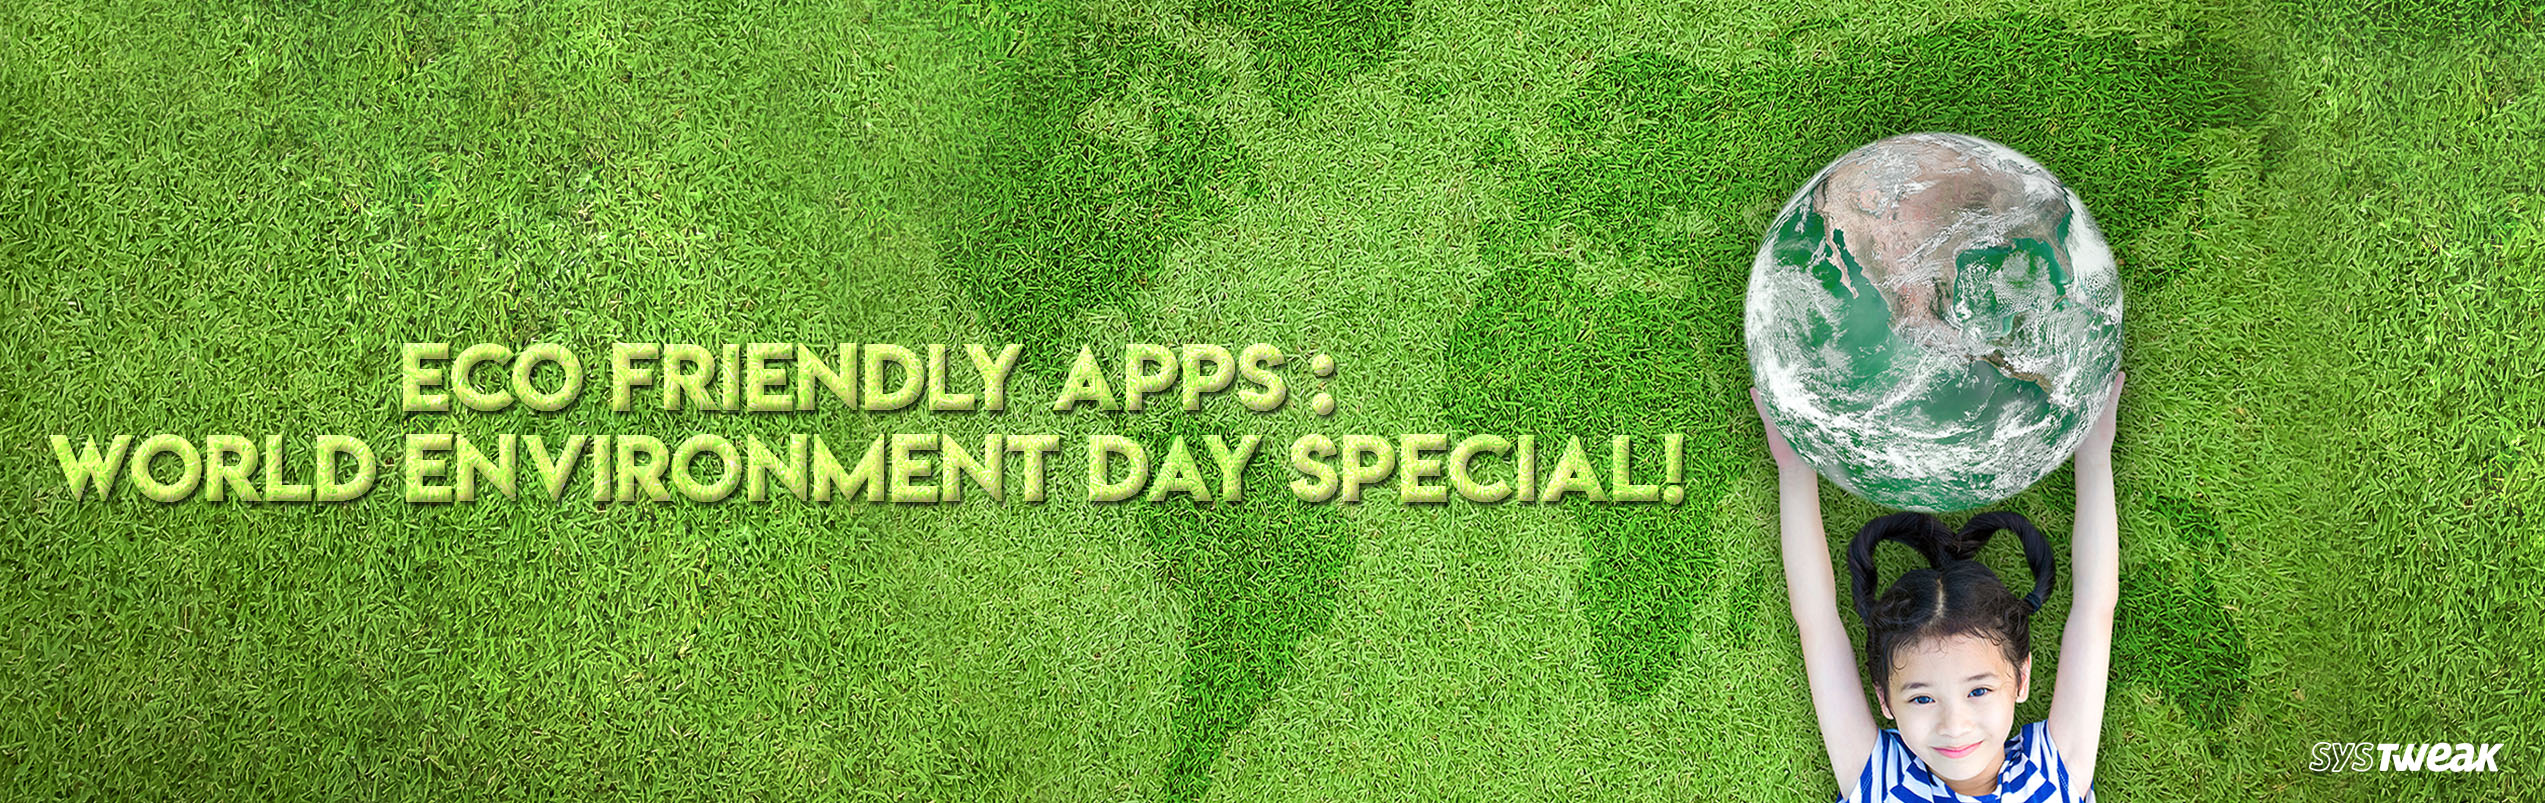 The Best Eco Friendly Apps: A World Environment Day Special!